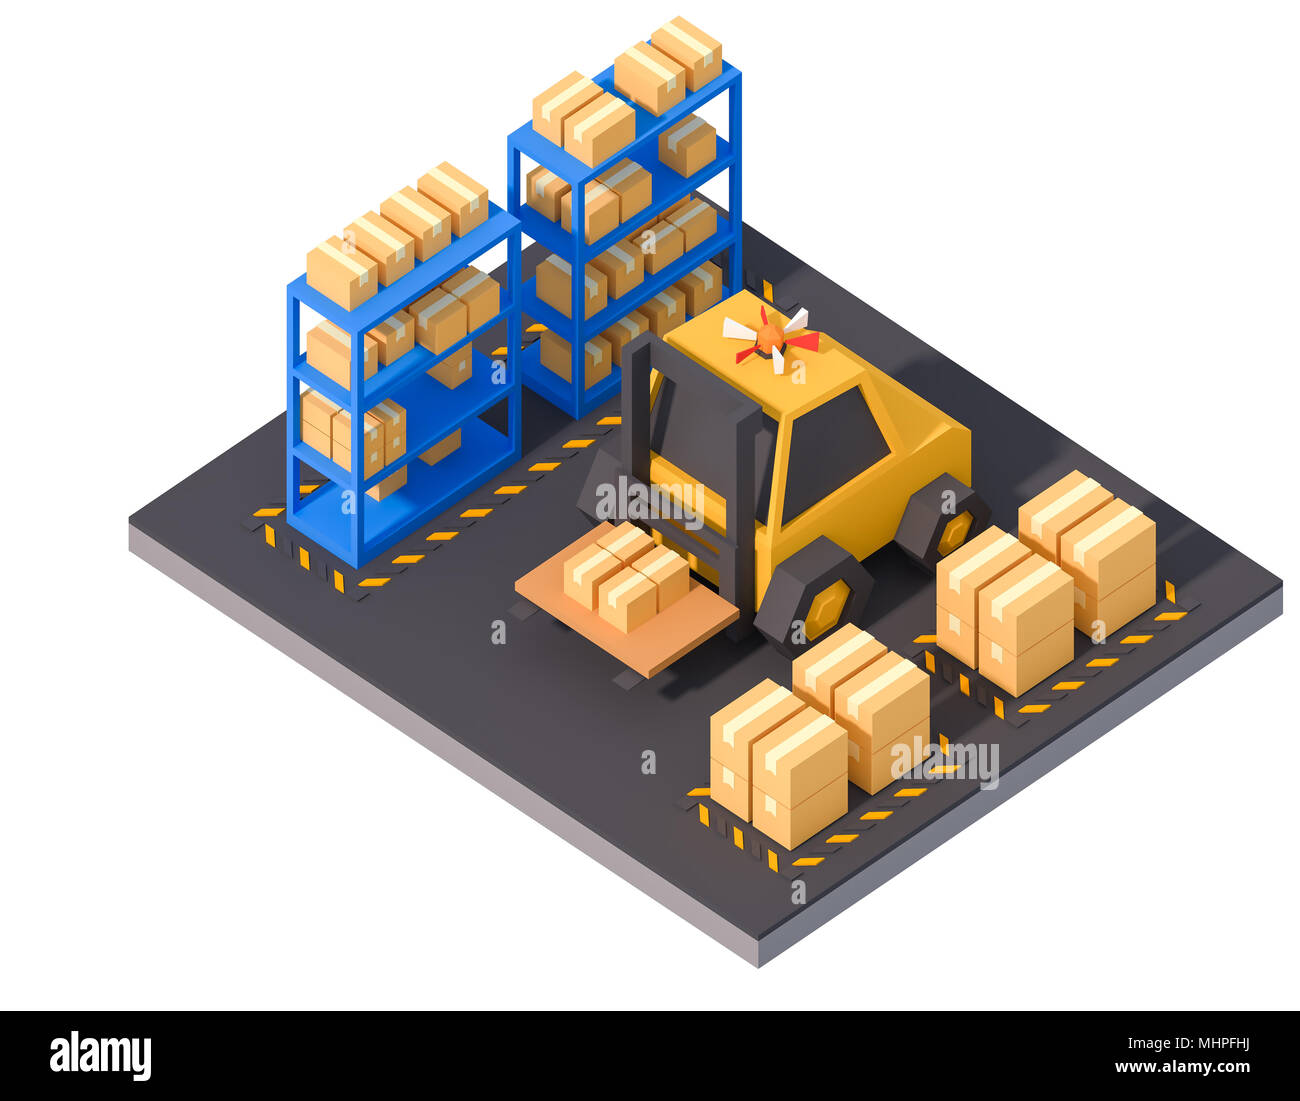 warehouse storage product logistic operation isometric lowpoly art factory work production line isolated on white 3d render. - Stock Image